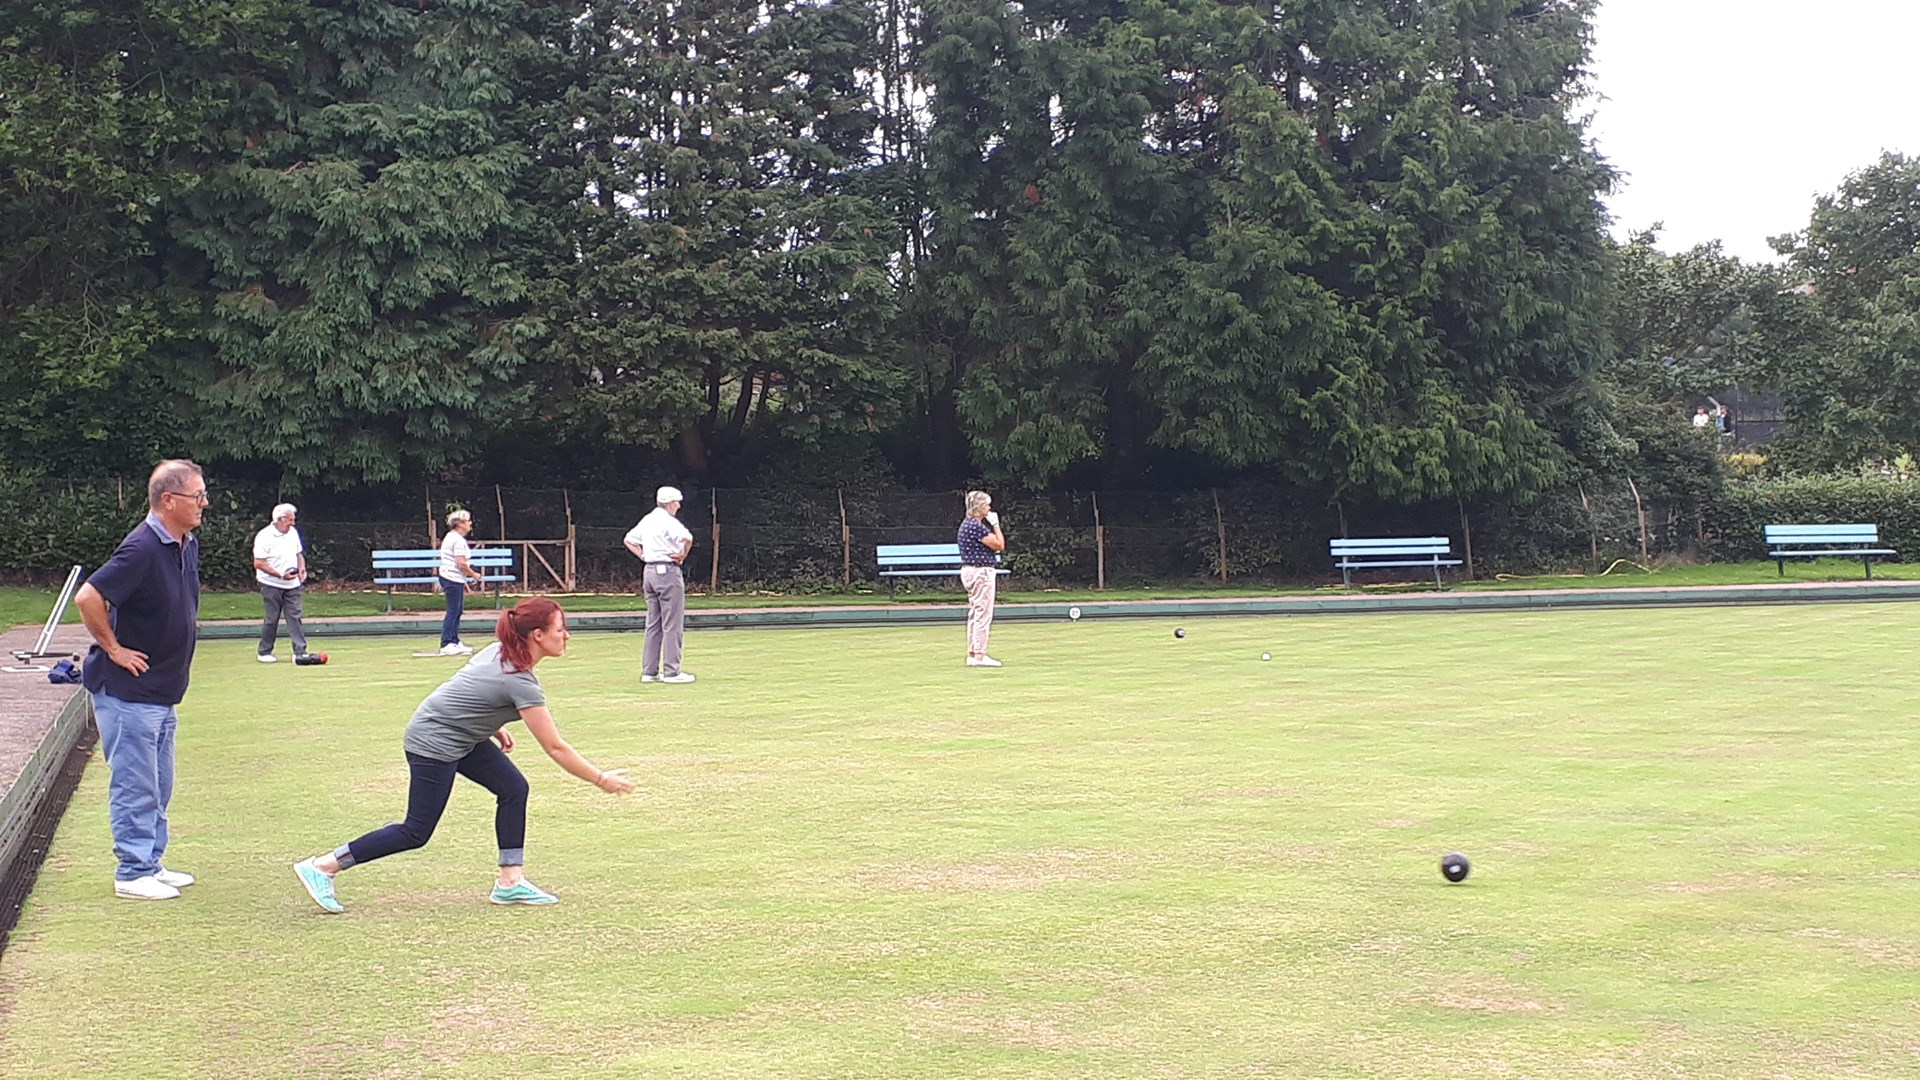 We are already gearing up for the new season which opens on Saturday 25th April. Prior to that, we will be holding Open Days for anyone who wants to give bowls a try. The Open Days are on Saturday 18th April,  Sunday 19th April and Wednesday 22nd April